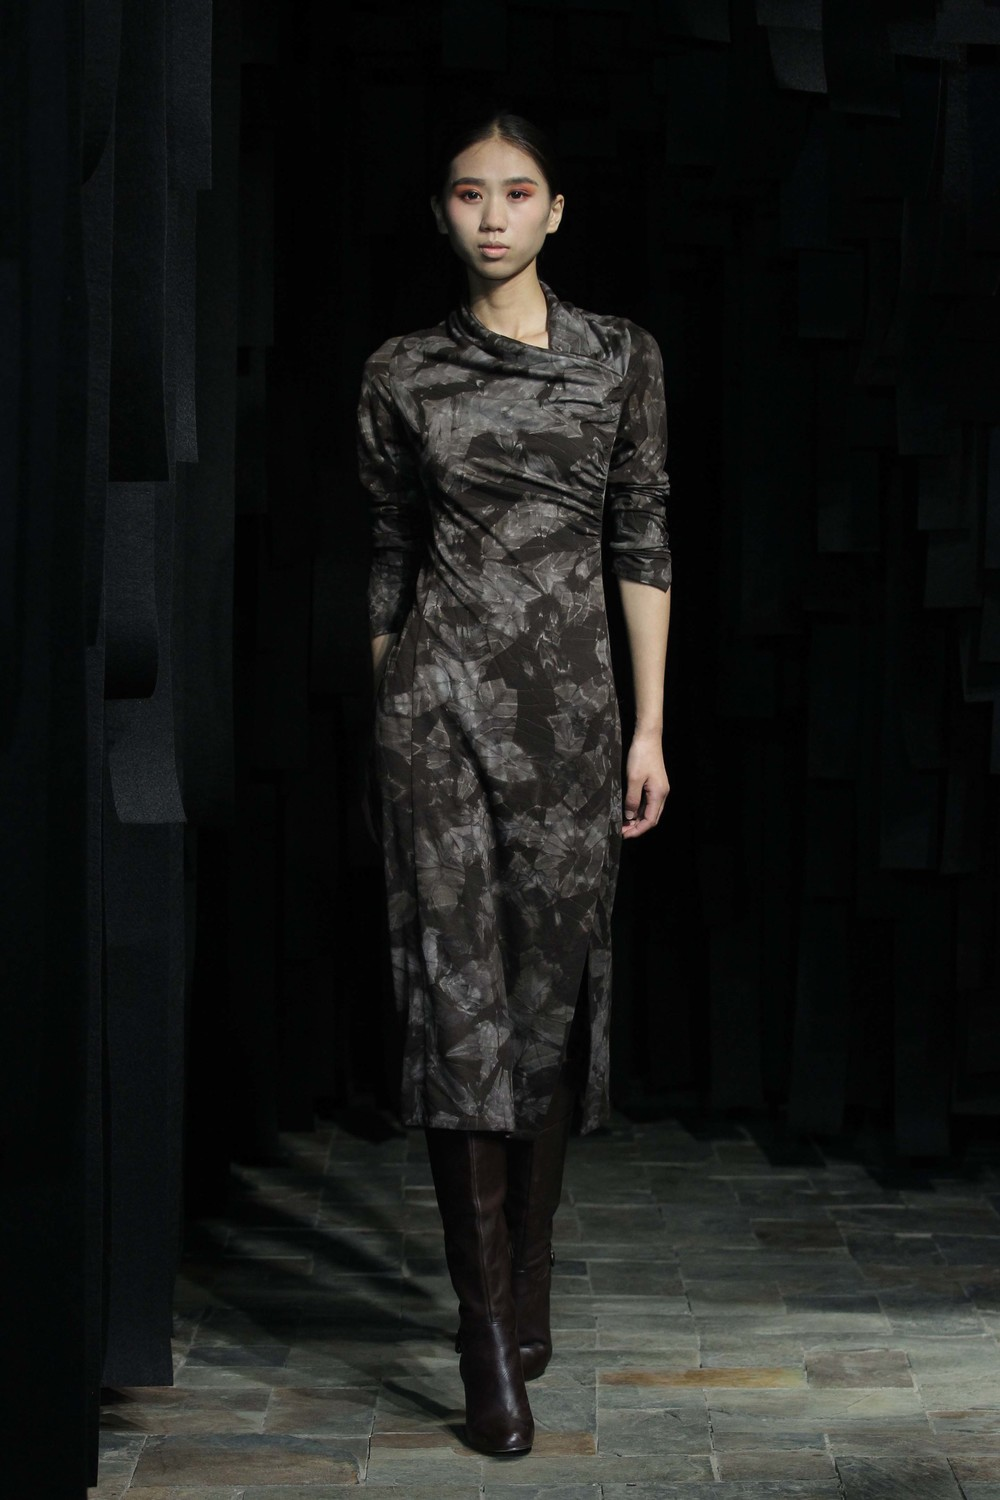 Natural shibori hand-dyed woolen dress with over-the shoulder-draped detailing